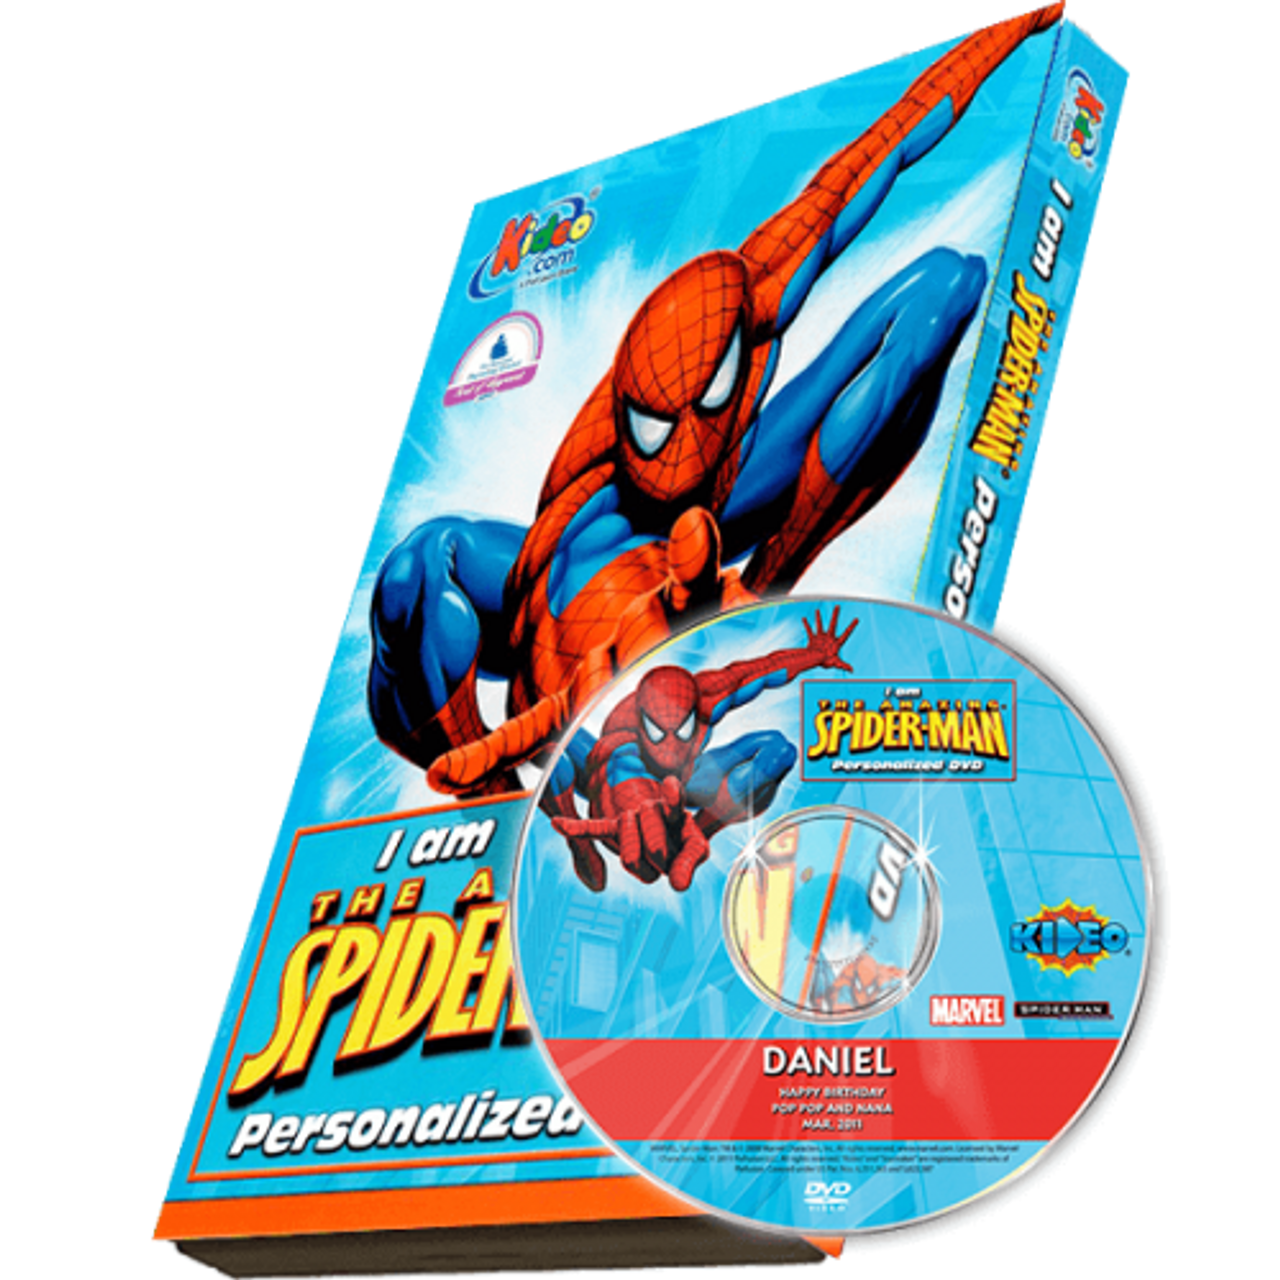 I Am The Amazing Spiderman Photo Personalized Dvd For Kids